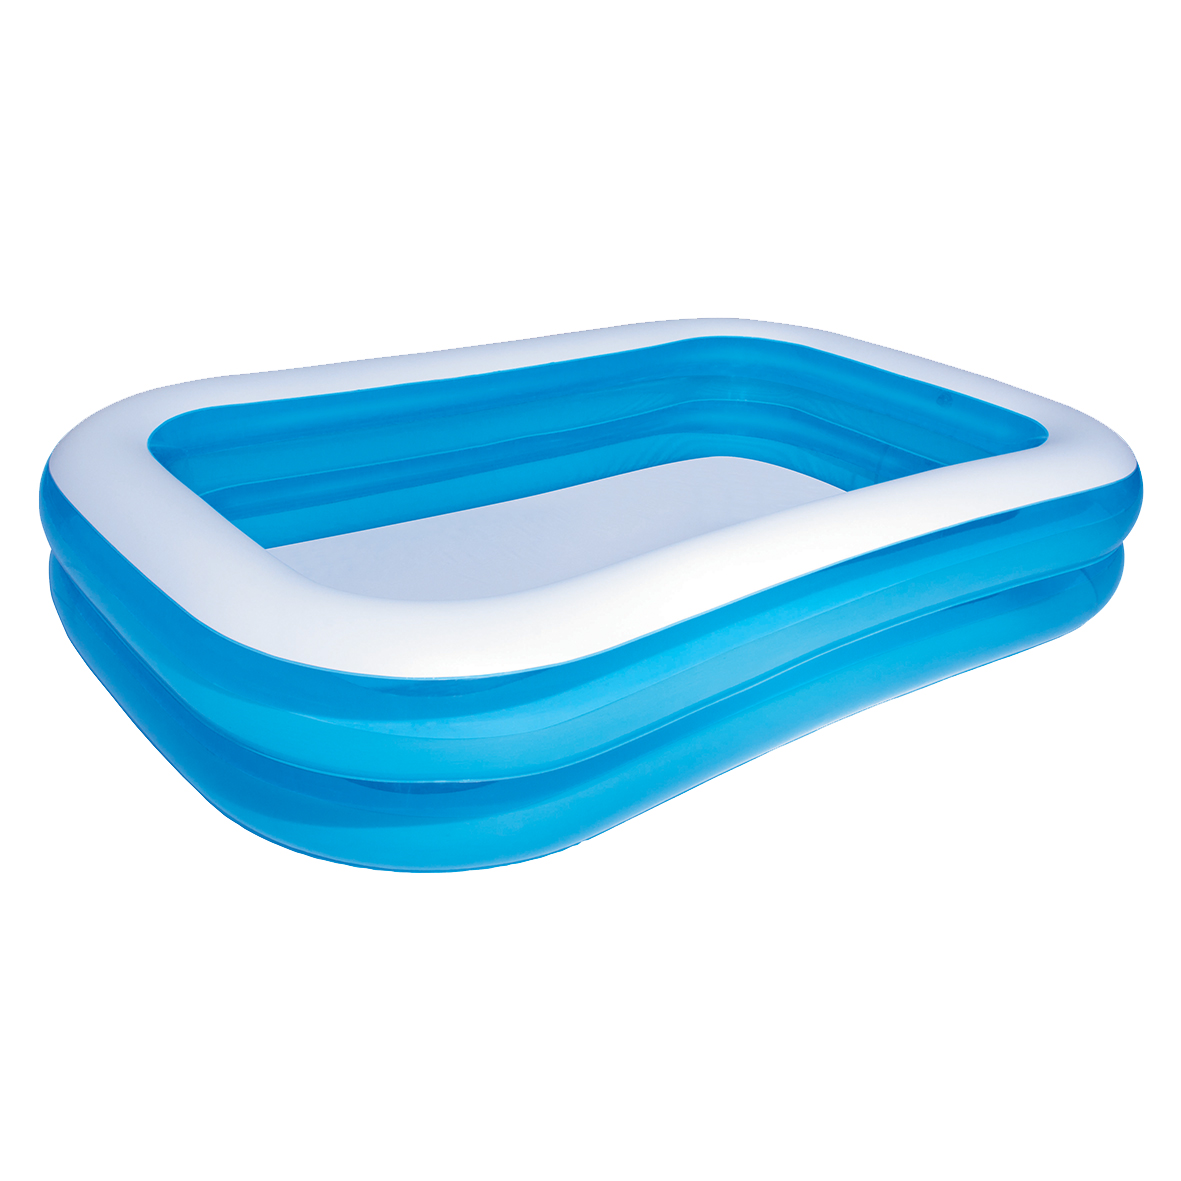 bestway-269-x-175-x-51cm-blue-rectangular-family-pool--code-54006